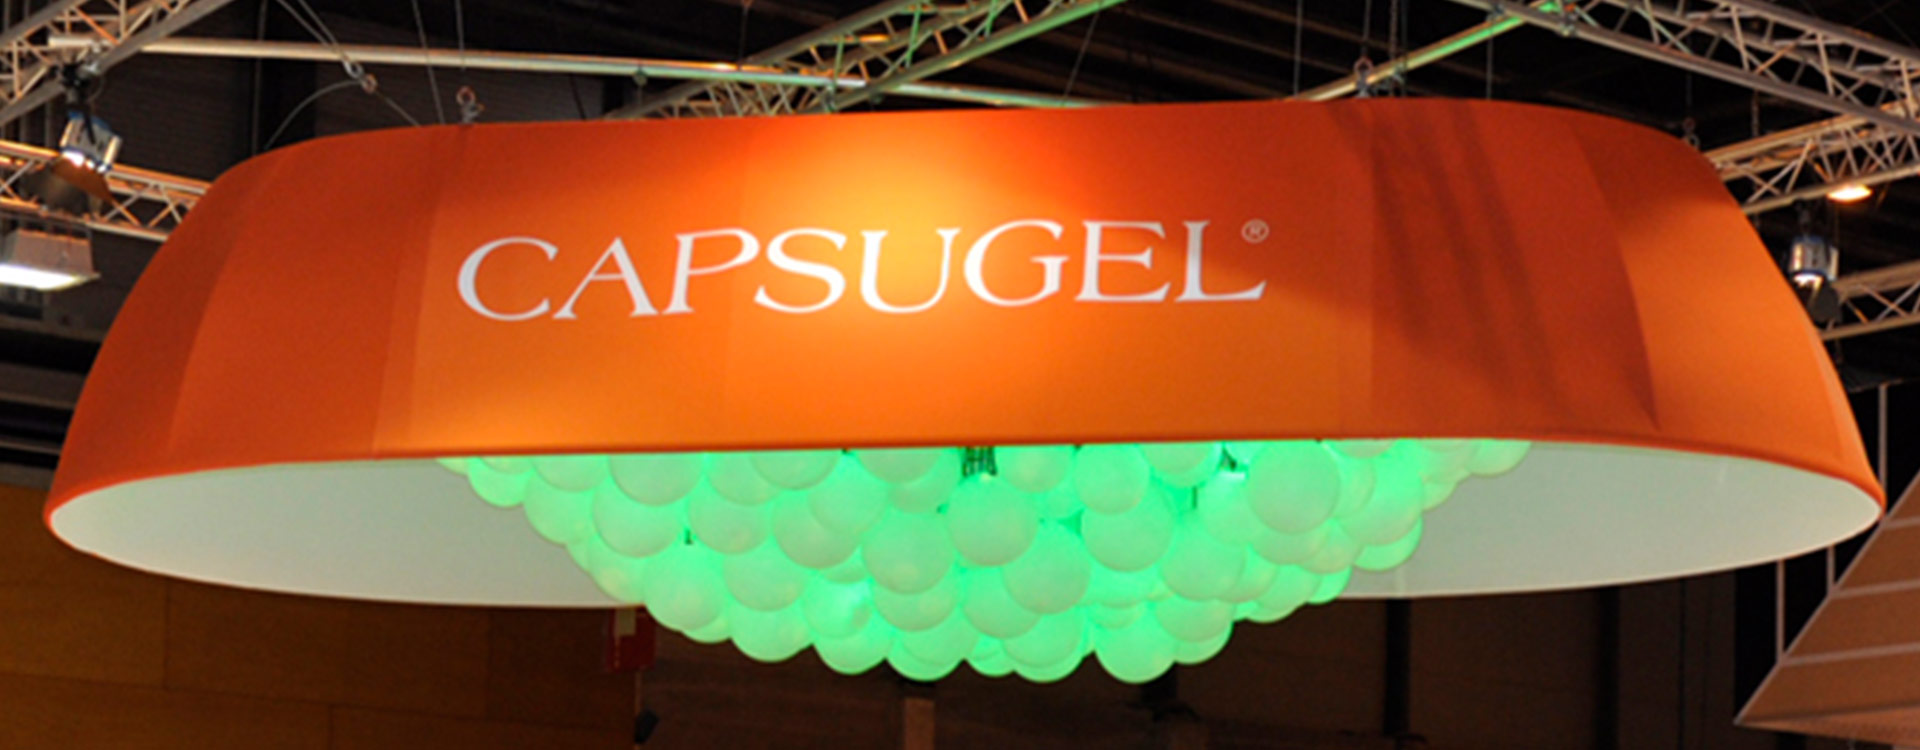 Capsugel, CPhI 2012, Madrid